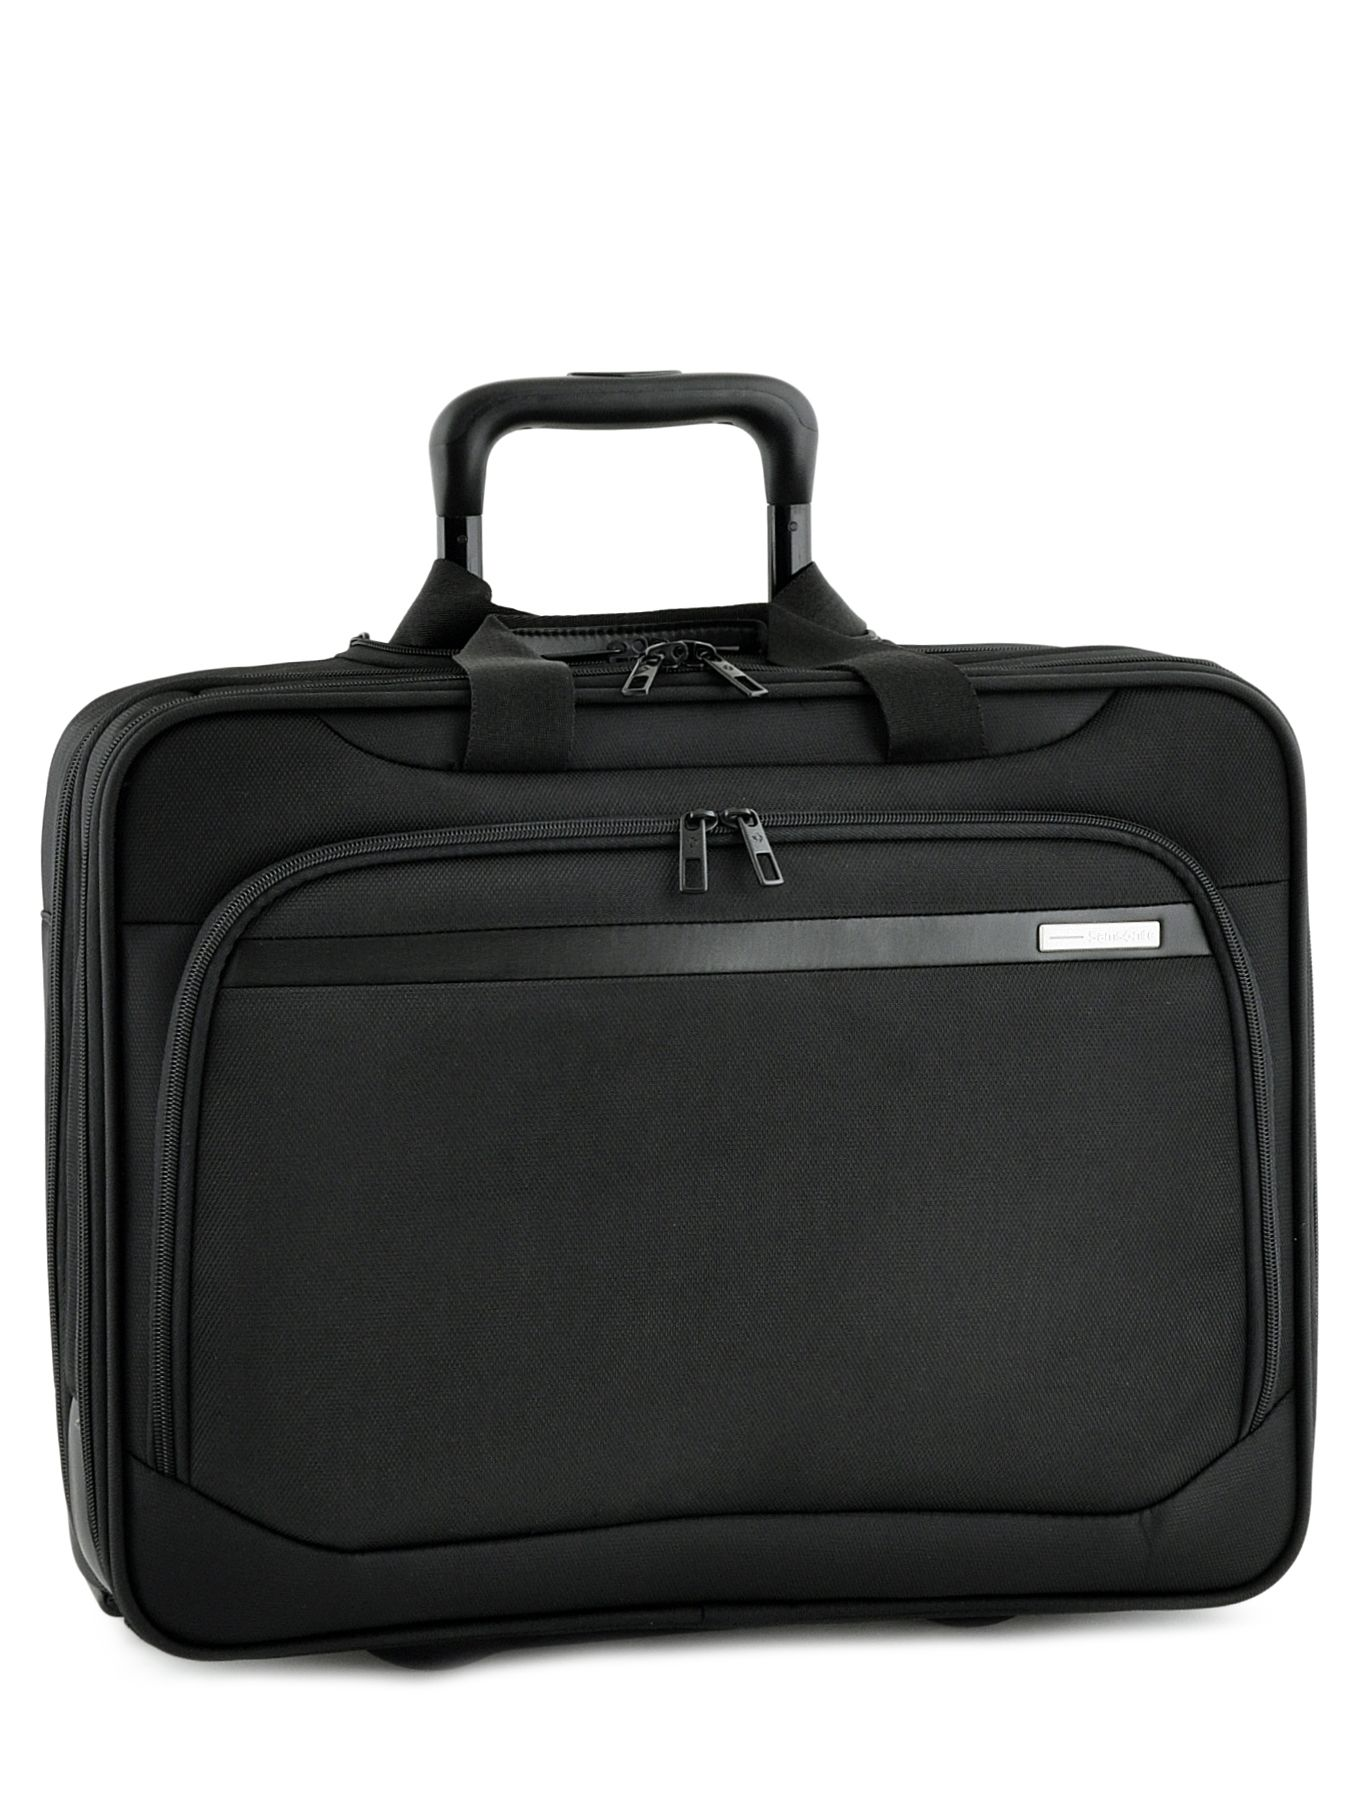 pilot case roulettes samsonite vectura 39v010 en vente au meilleur prix. Black Bedroom Furniture Sets. Home Design Ideas